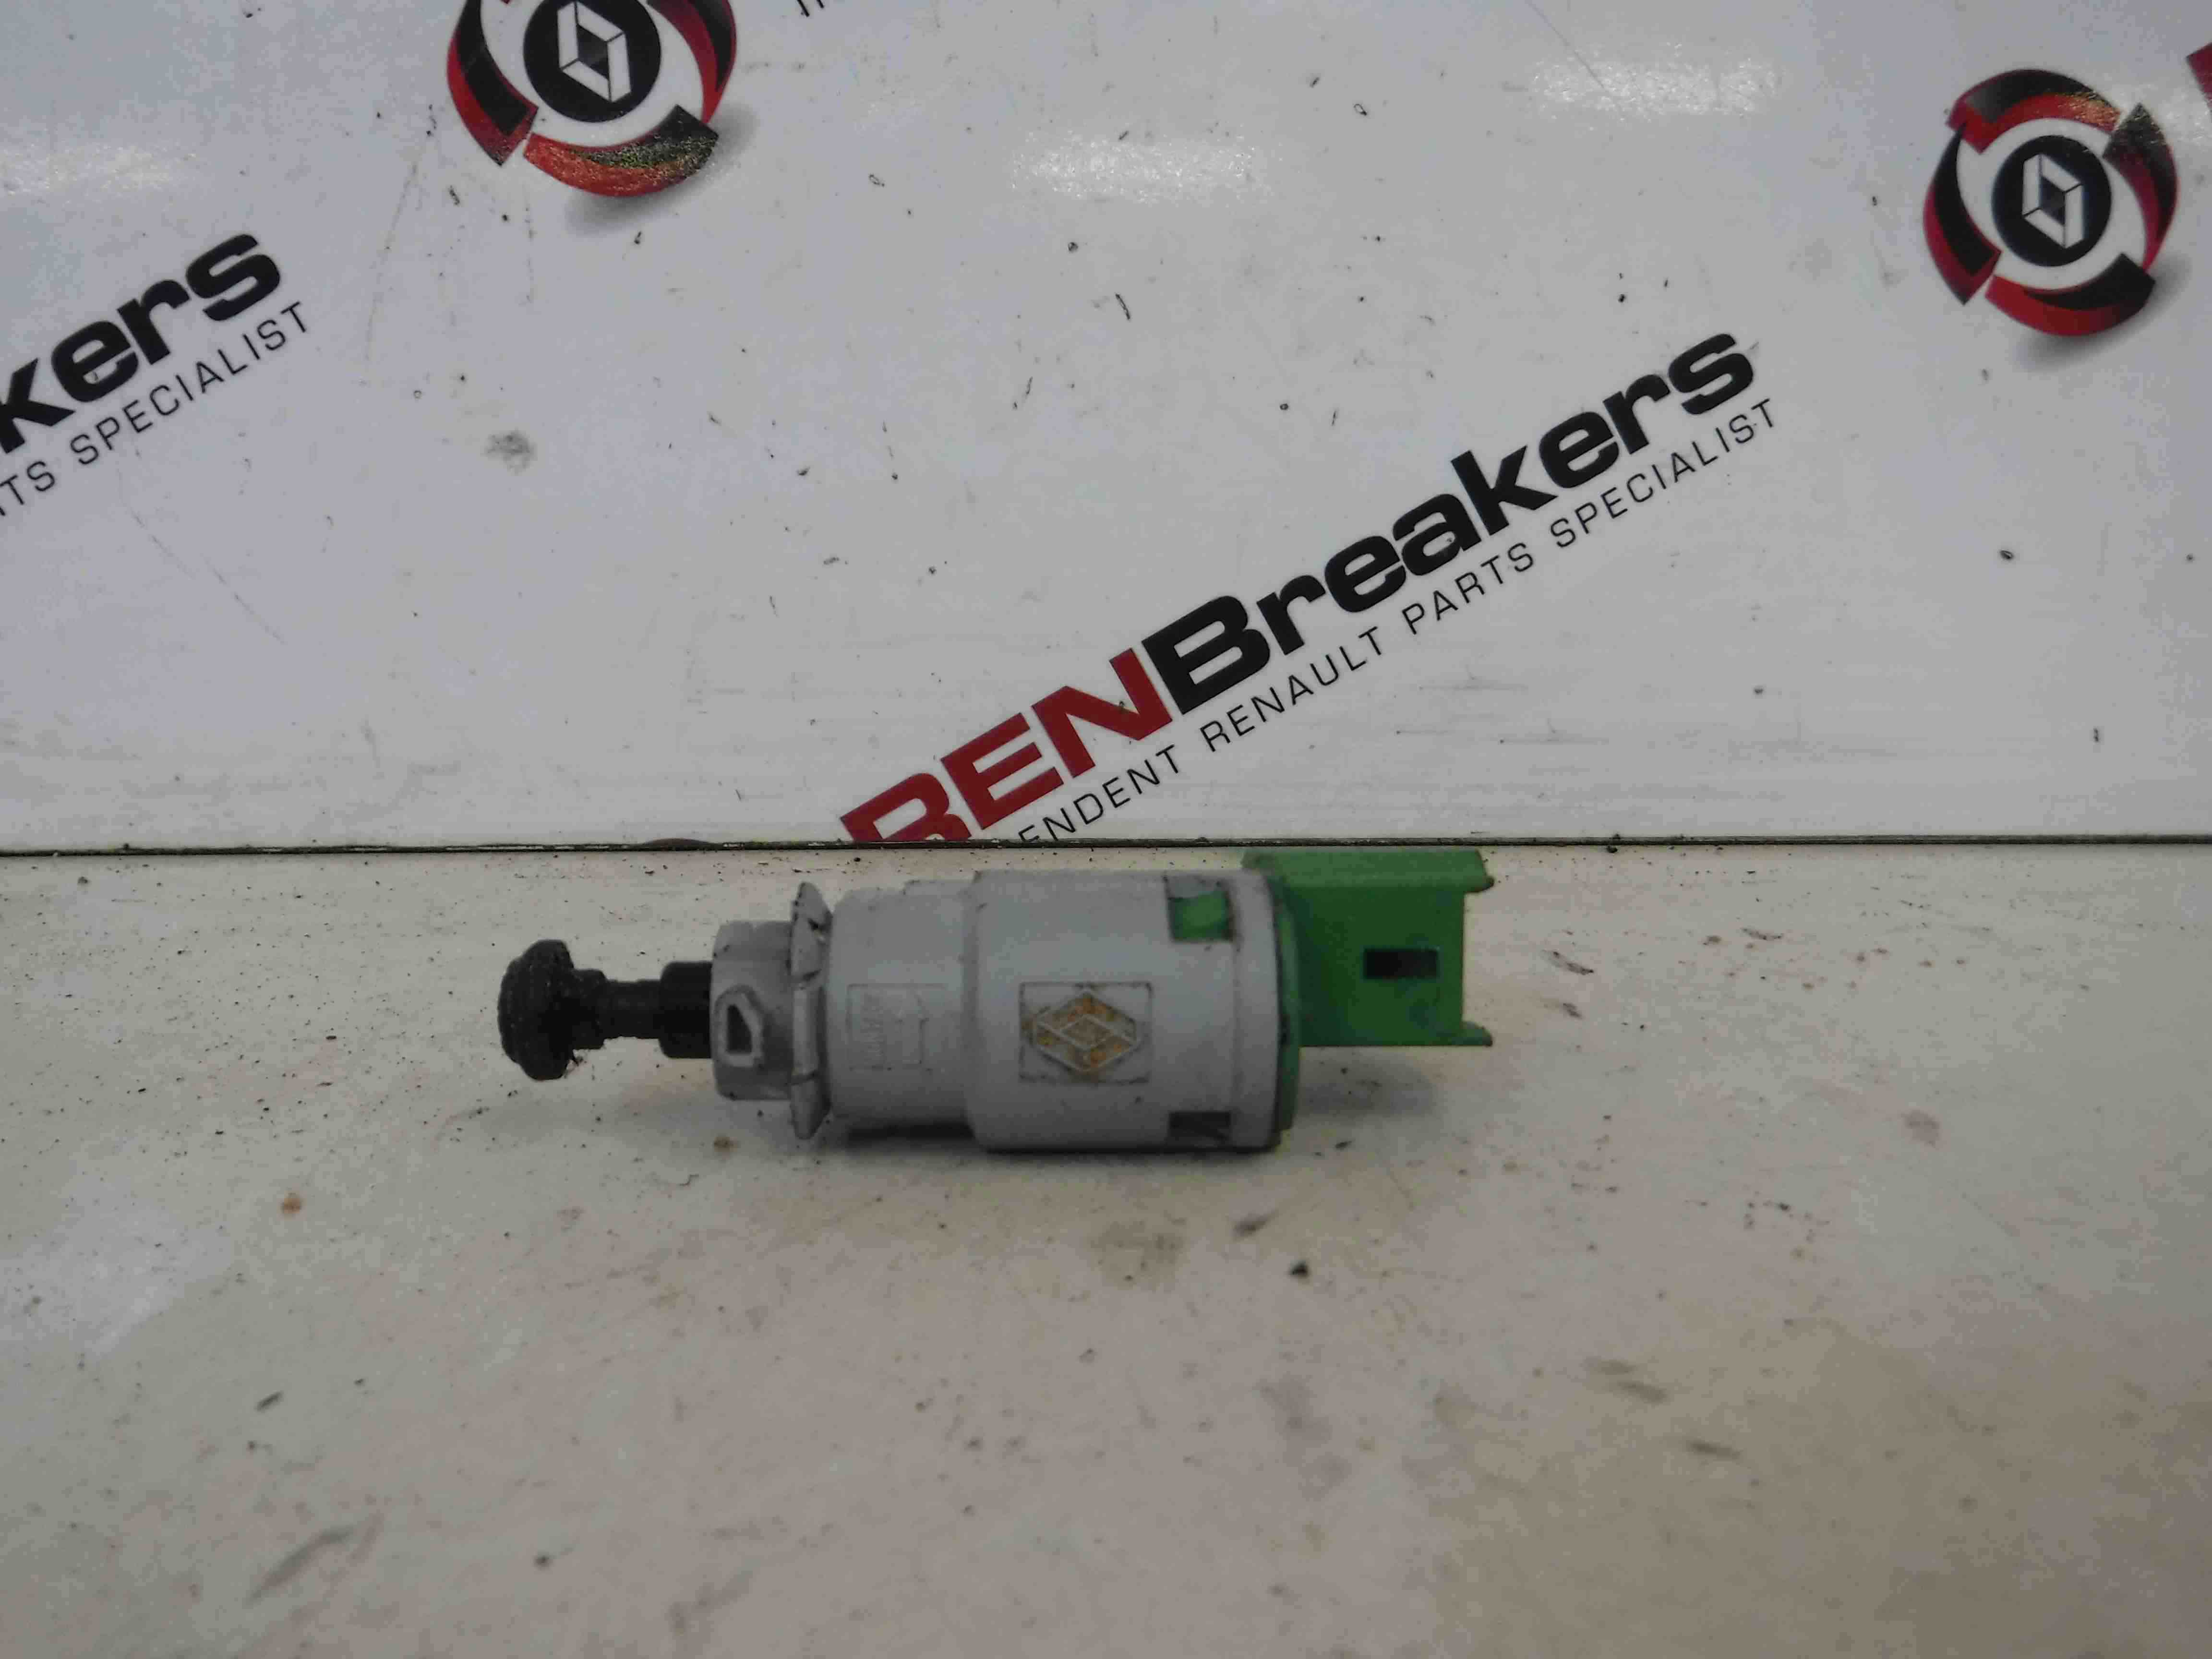 Renault Espace 2003-2013 Clutch Pedal Switch Sensor Green 8200276360